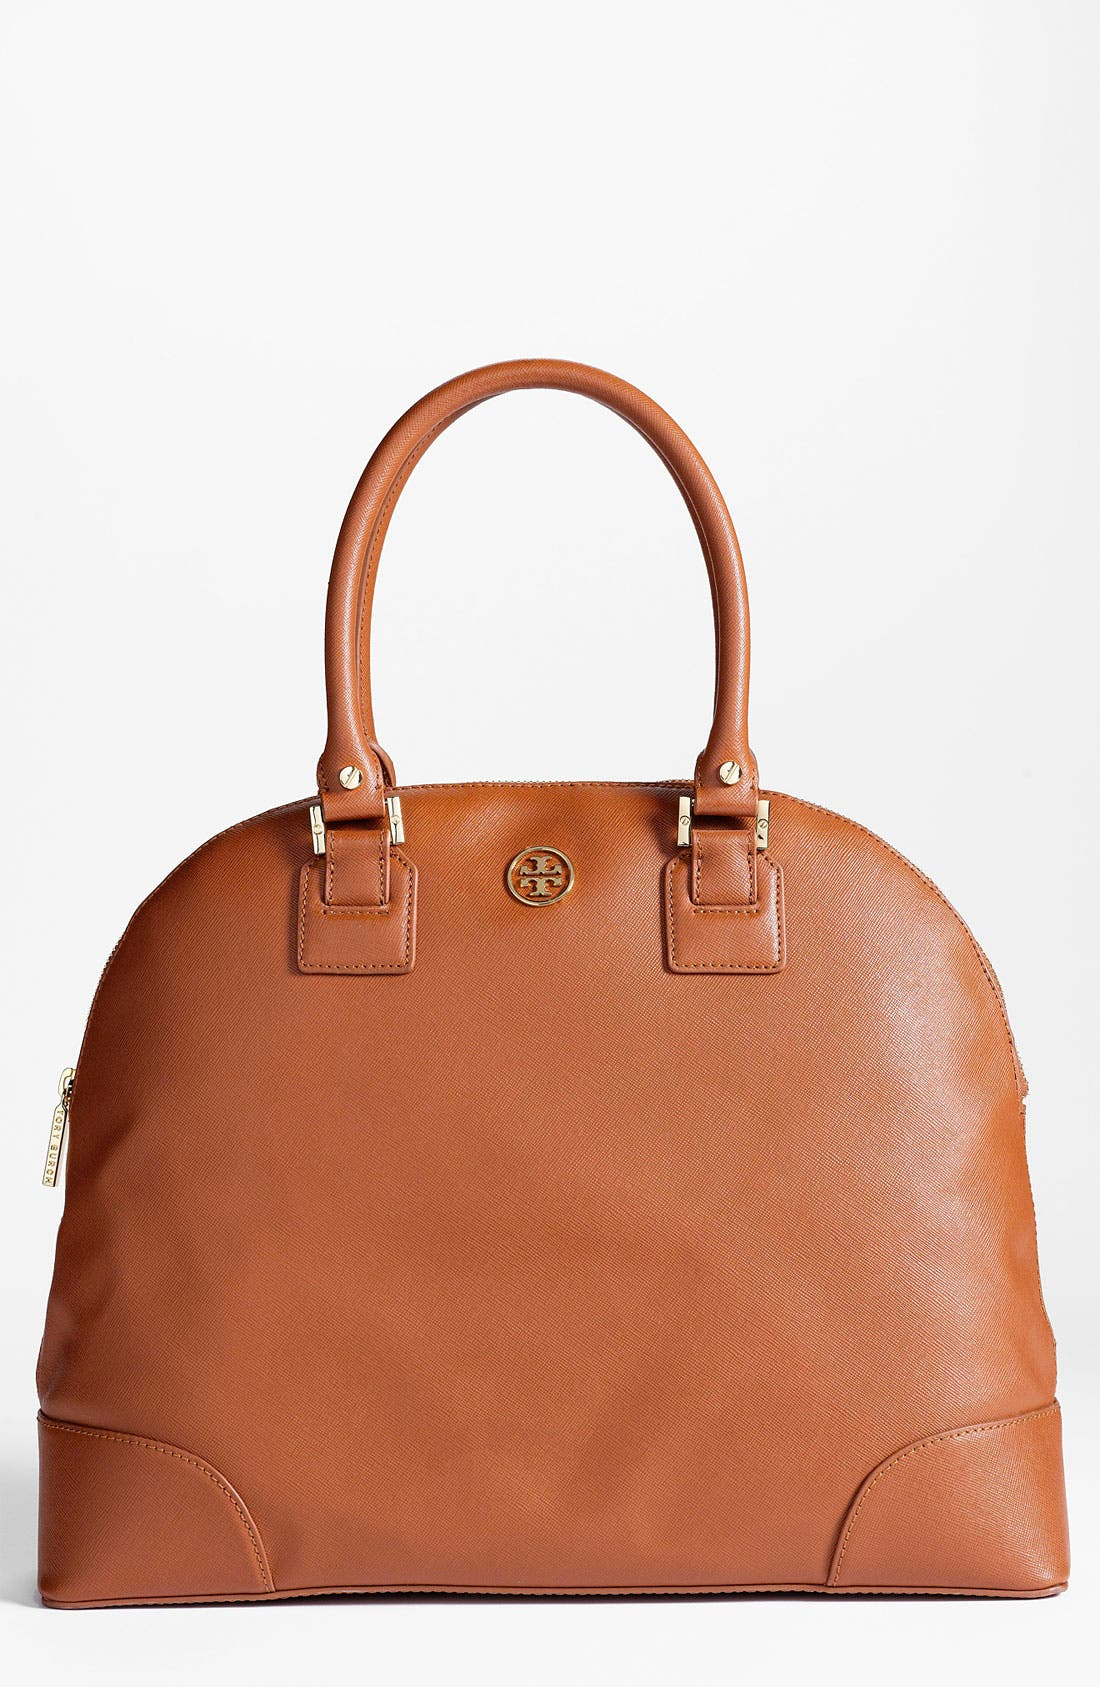 Alternate Image 1 Selected - Tory Burch 'Robinson' Dome Satchel